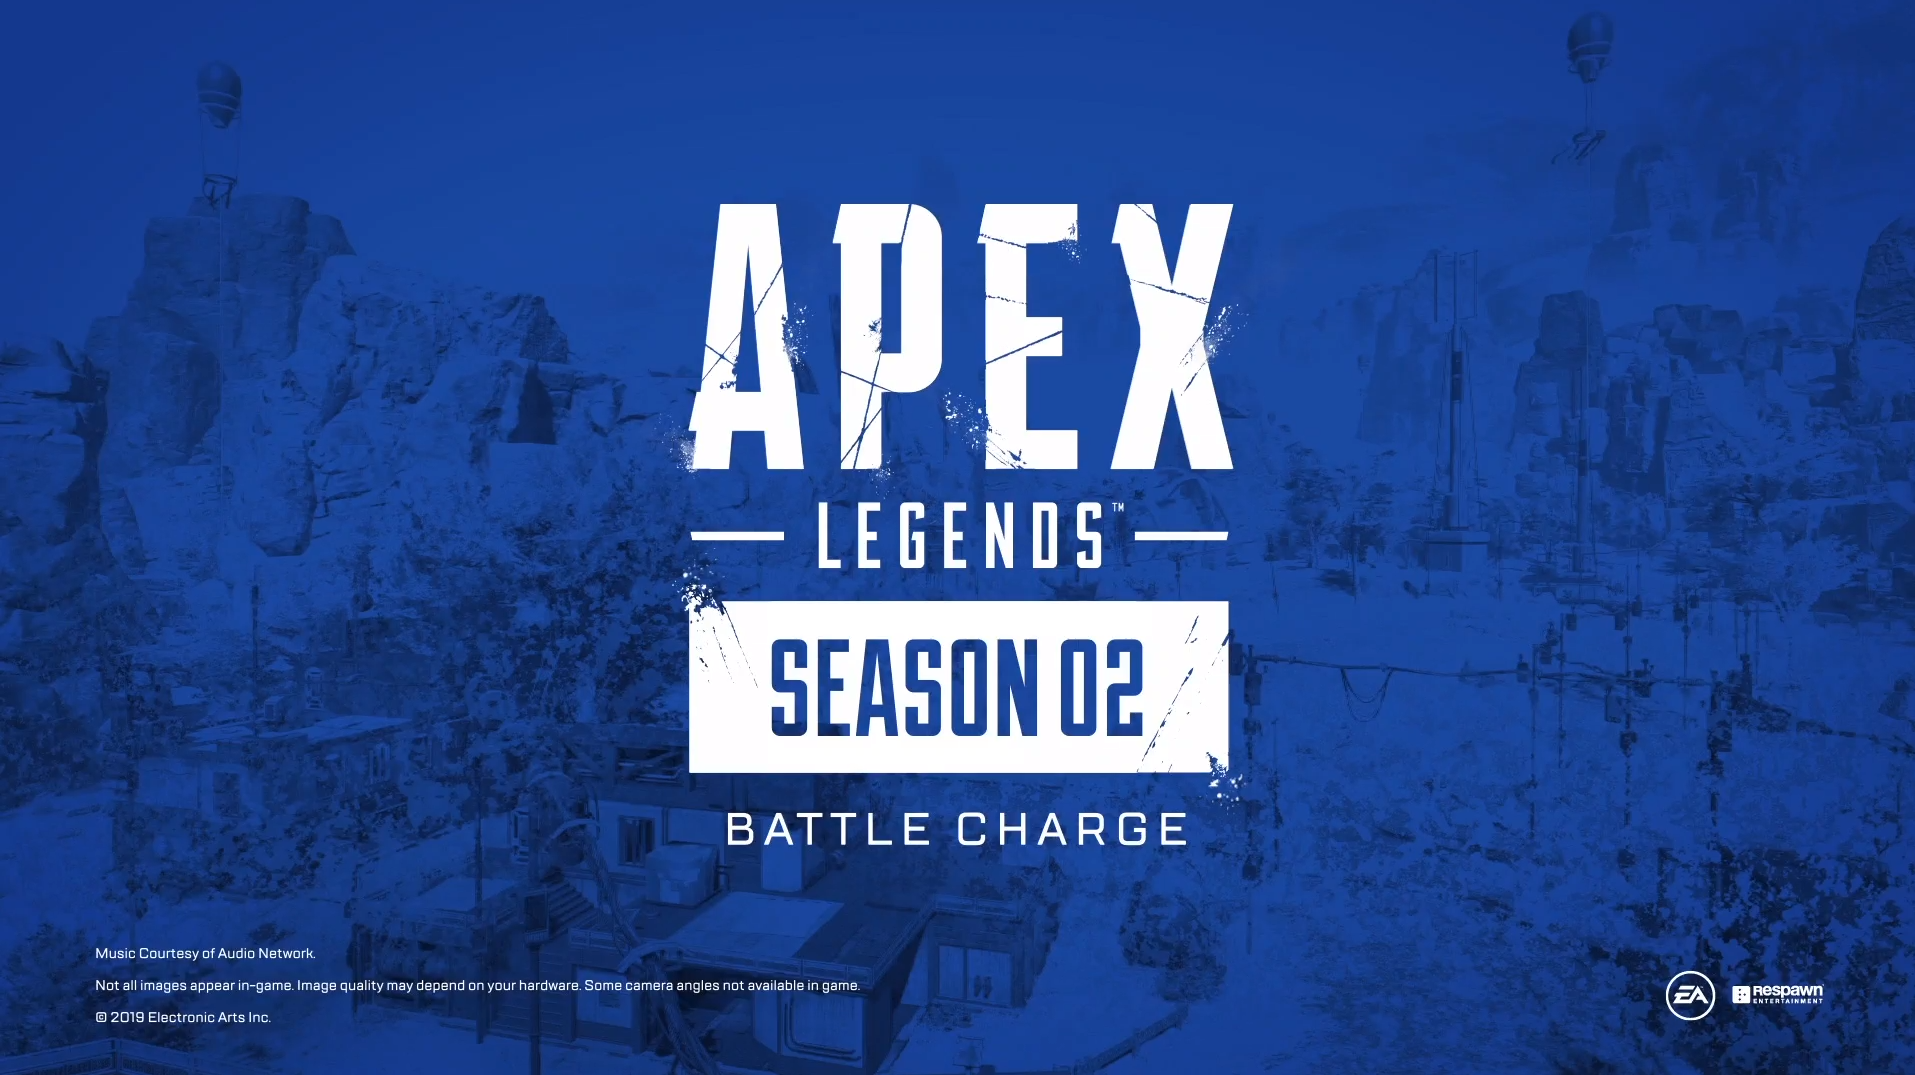 Battle Charge, Apex Legends